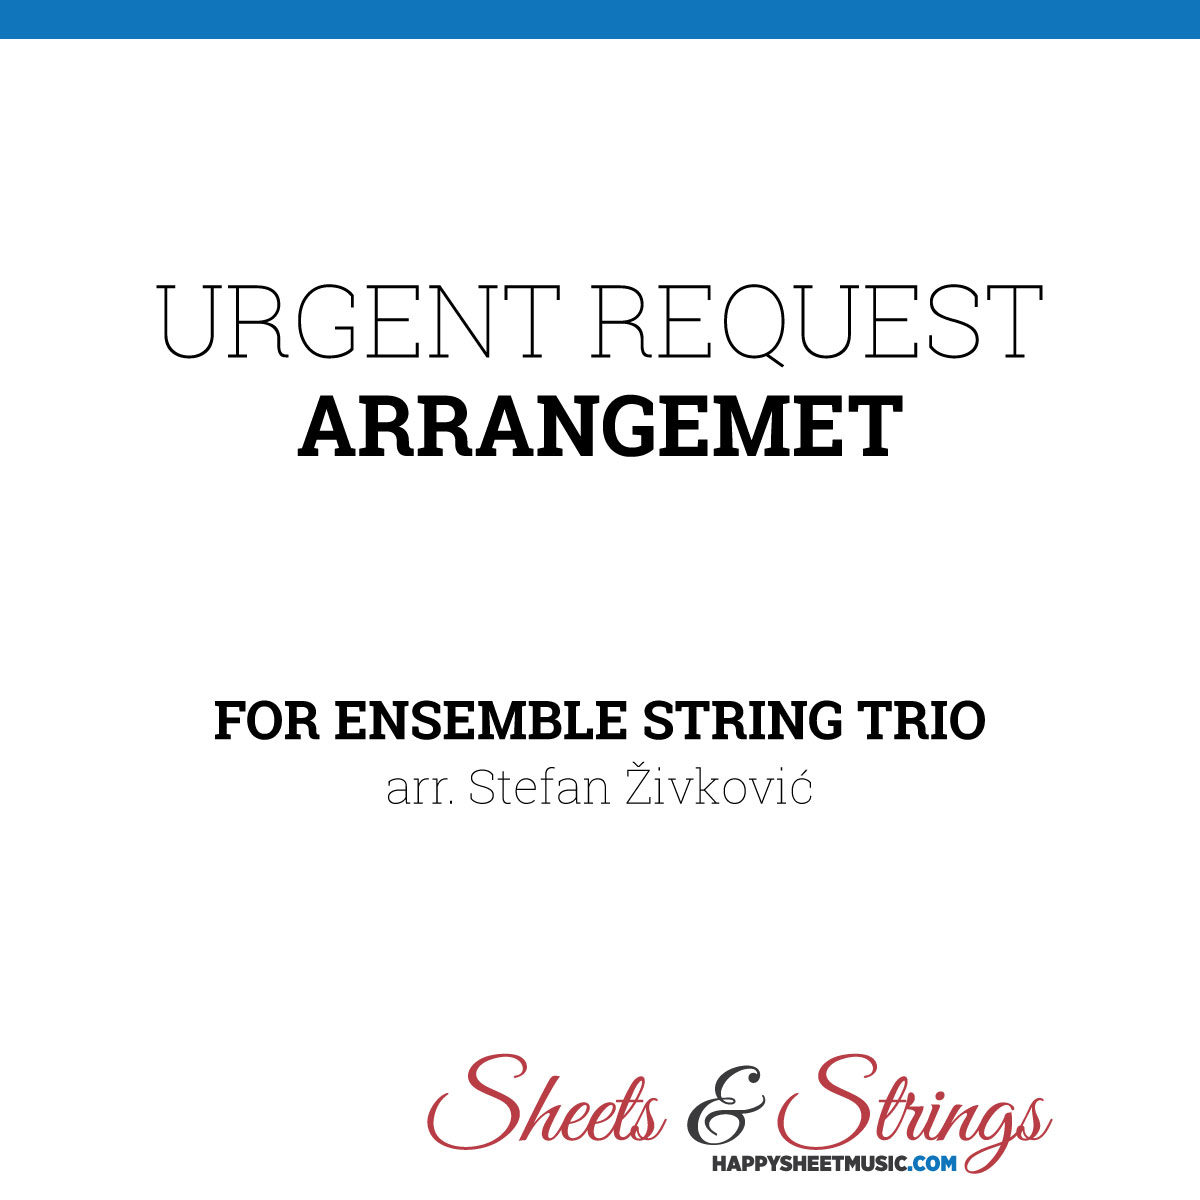 Urgent Request for String Trio music arrangement